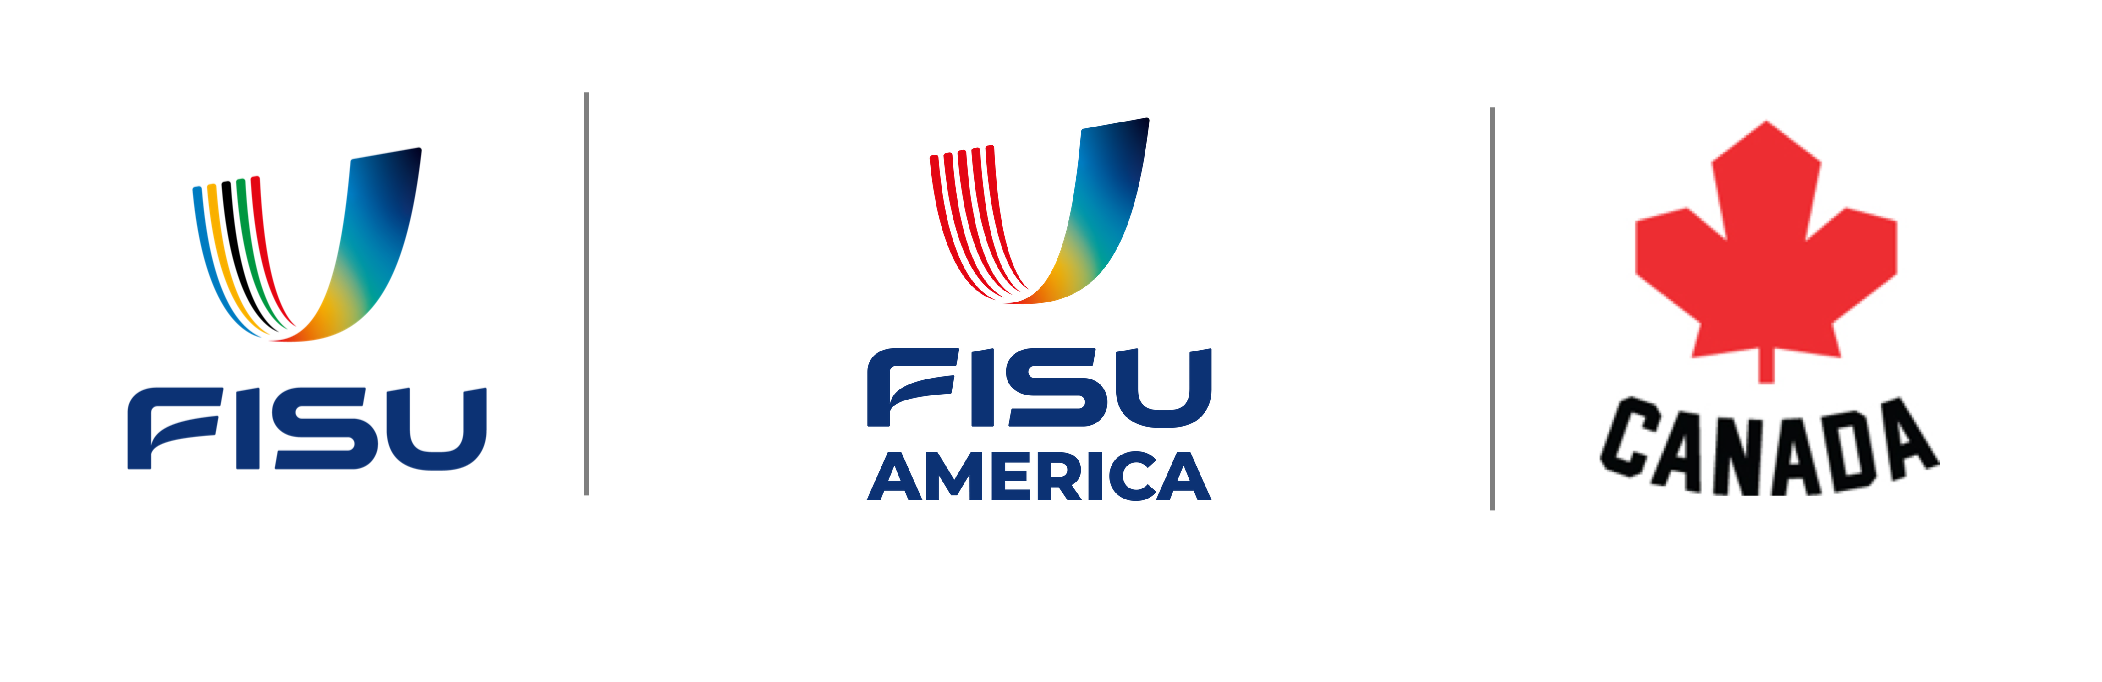 FISU.America.CAN_new.png (165 KB)